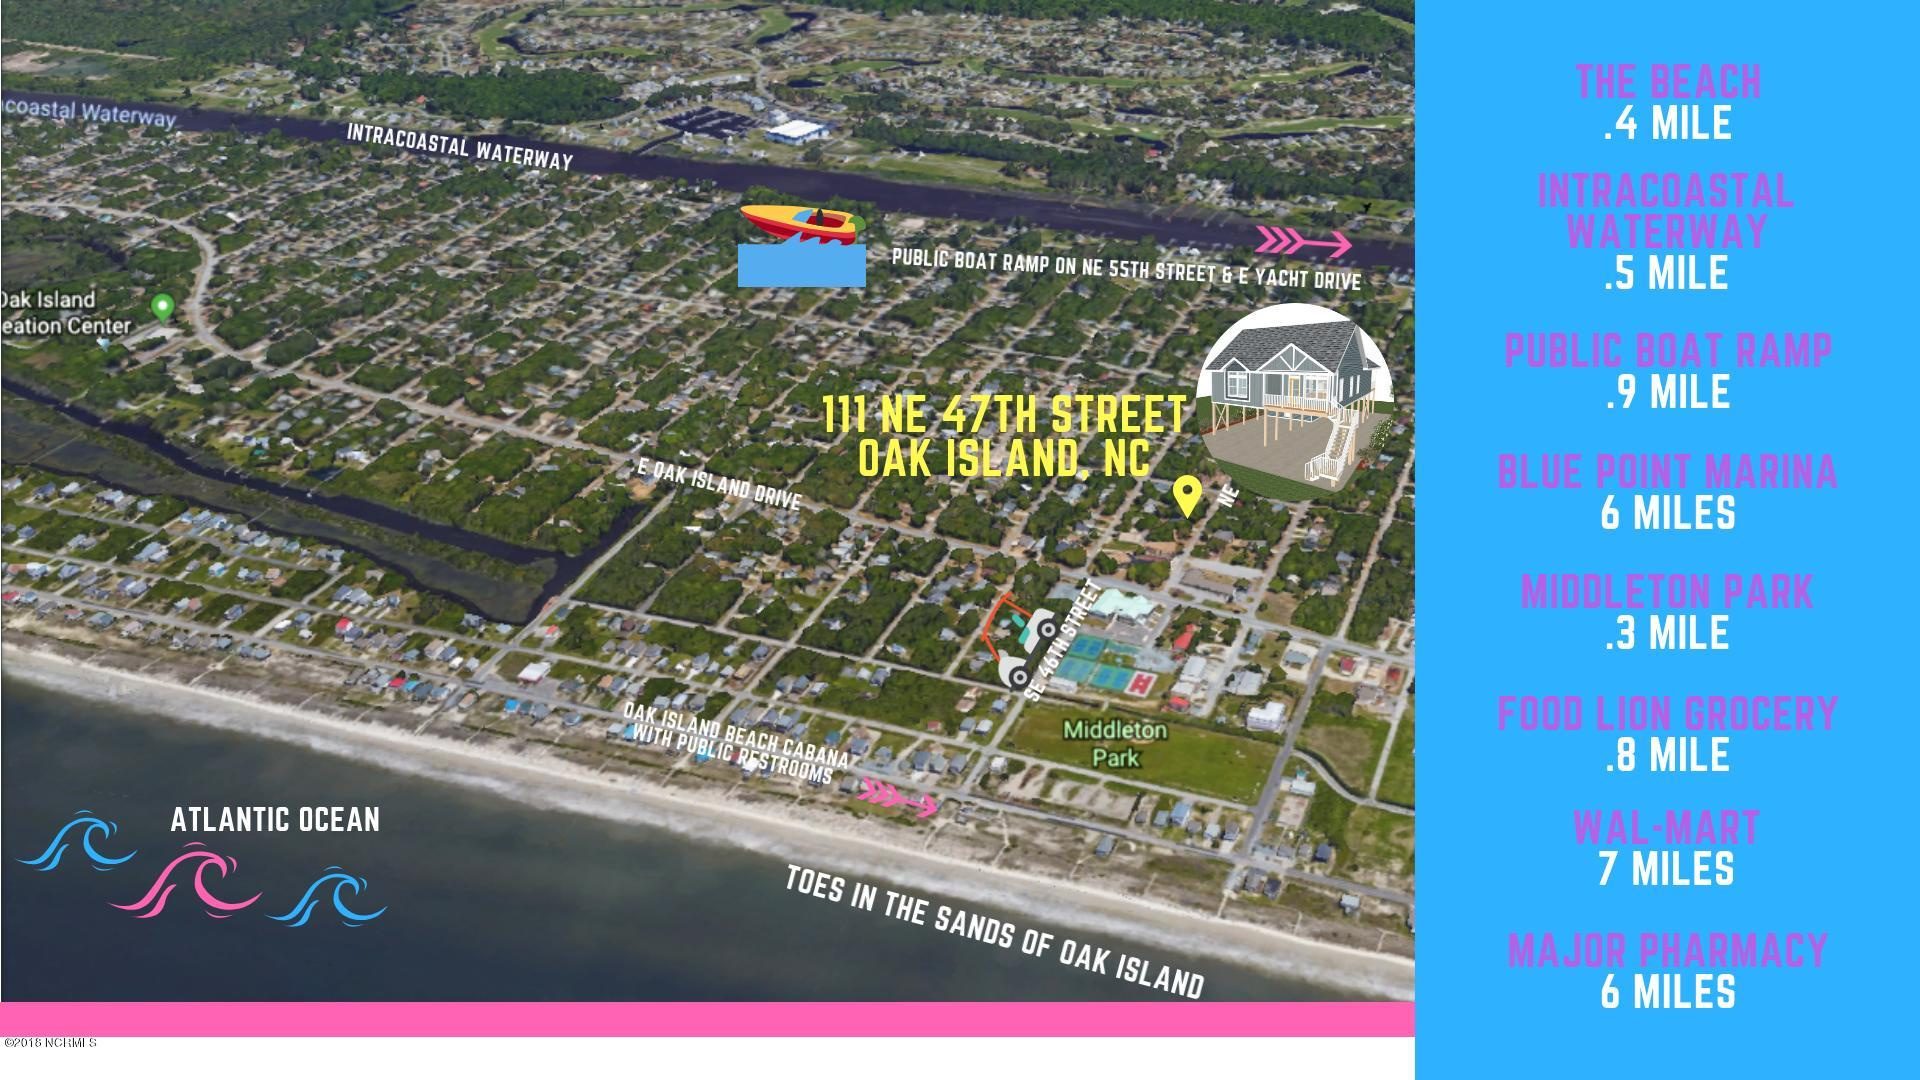 111 NE 47TH Street Oak Island, NC 28465